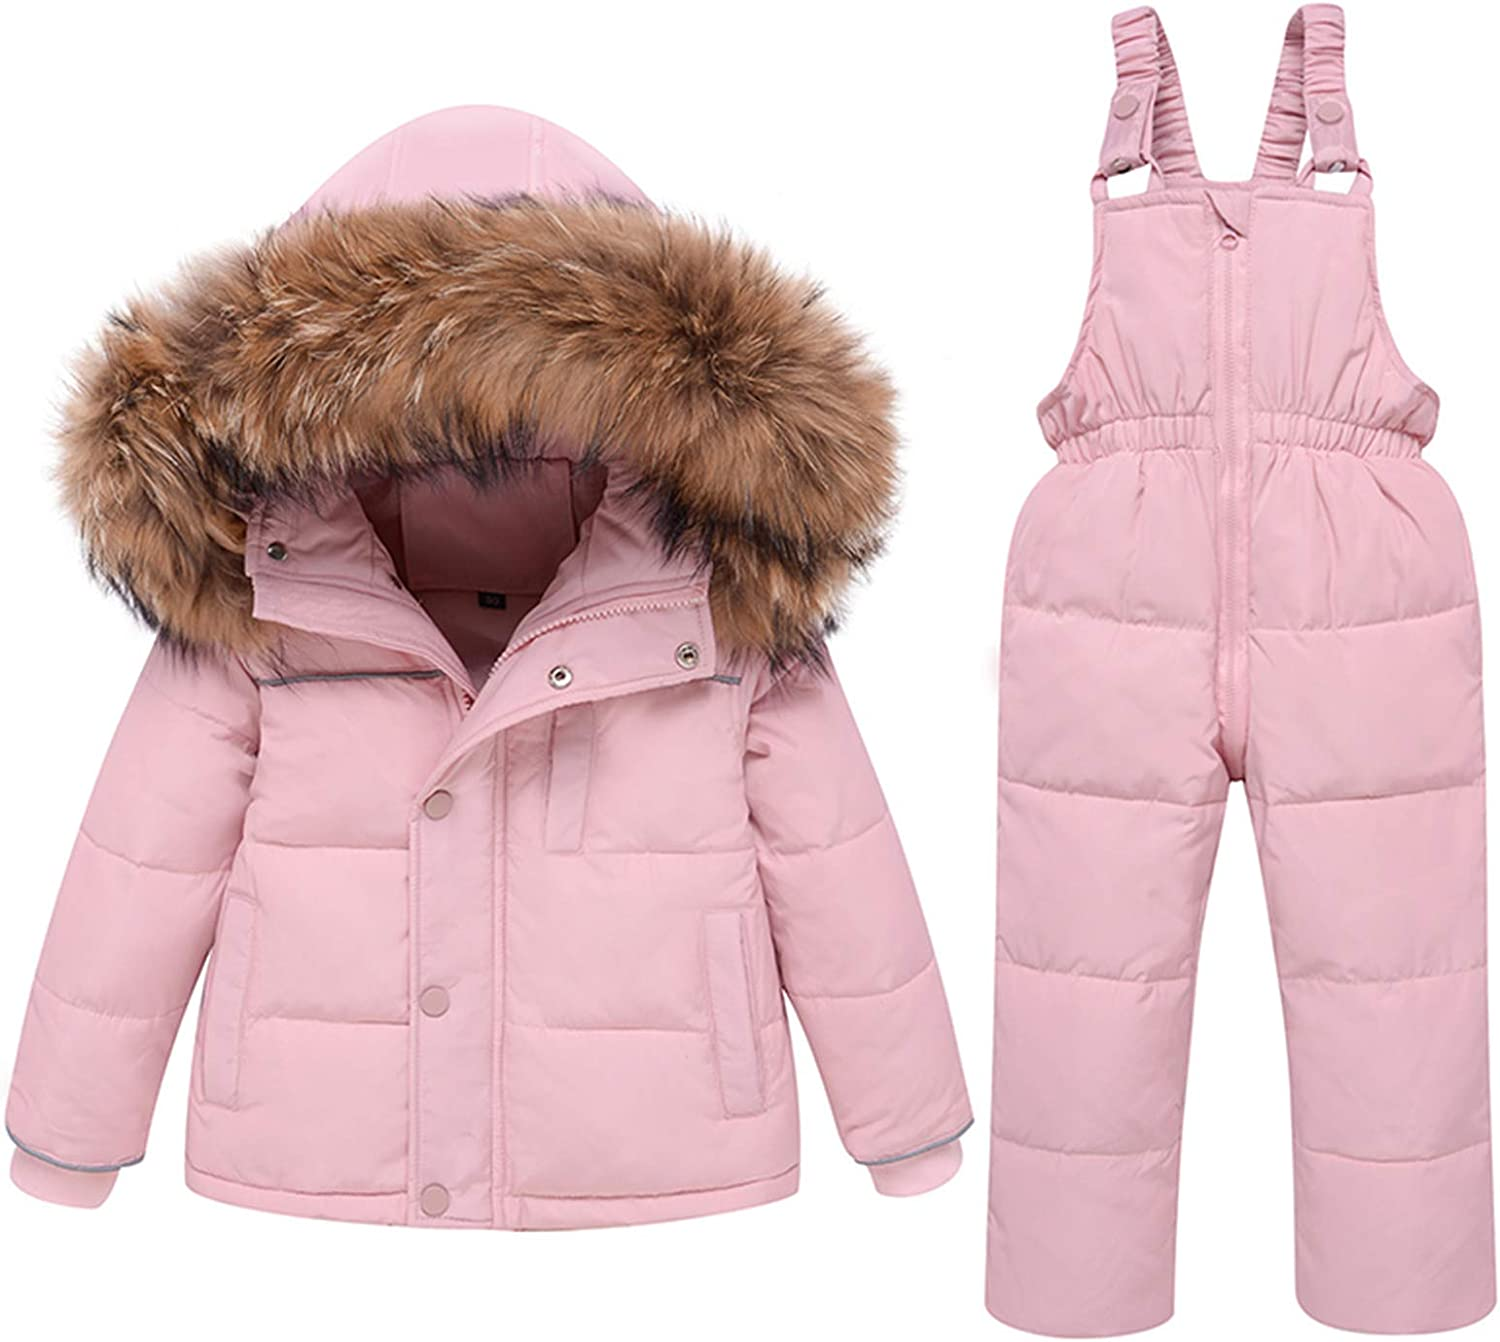 amropi Baby Boys Girls Snowsuit Hooded and Sn Free Shipping New Down Jacket Puffer Popular standard